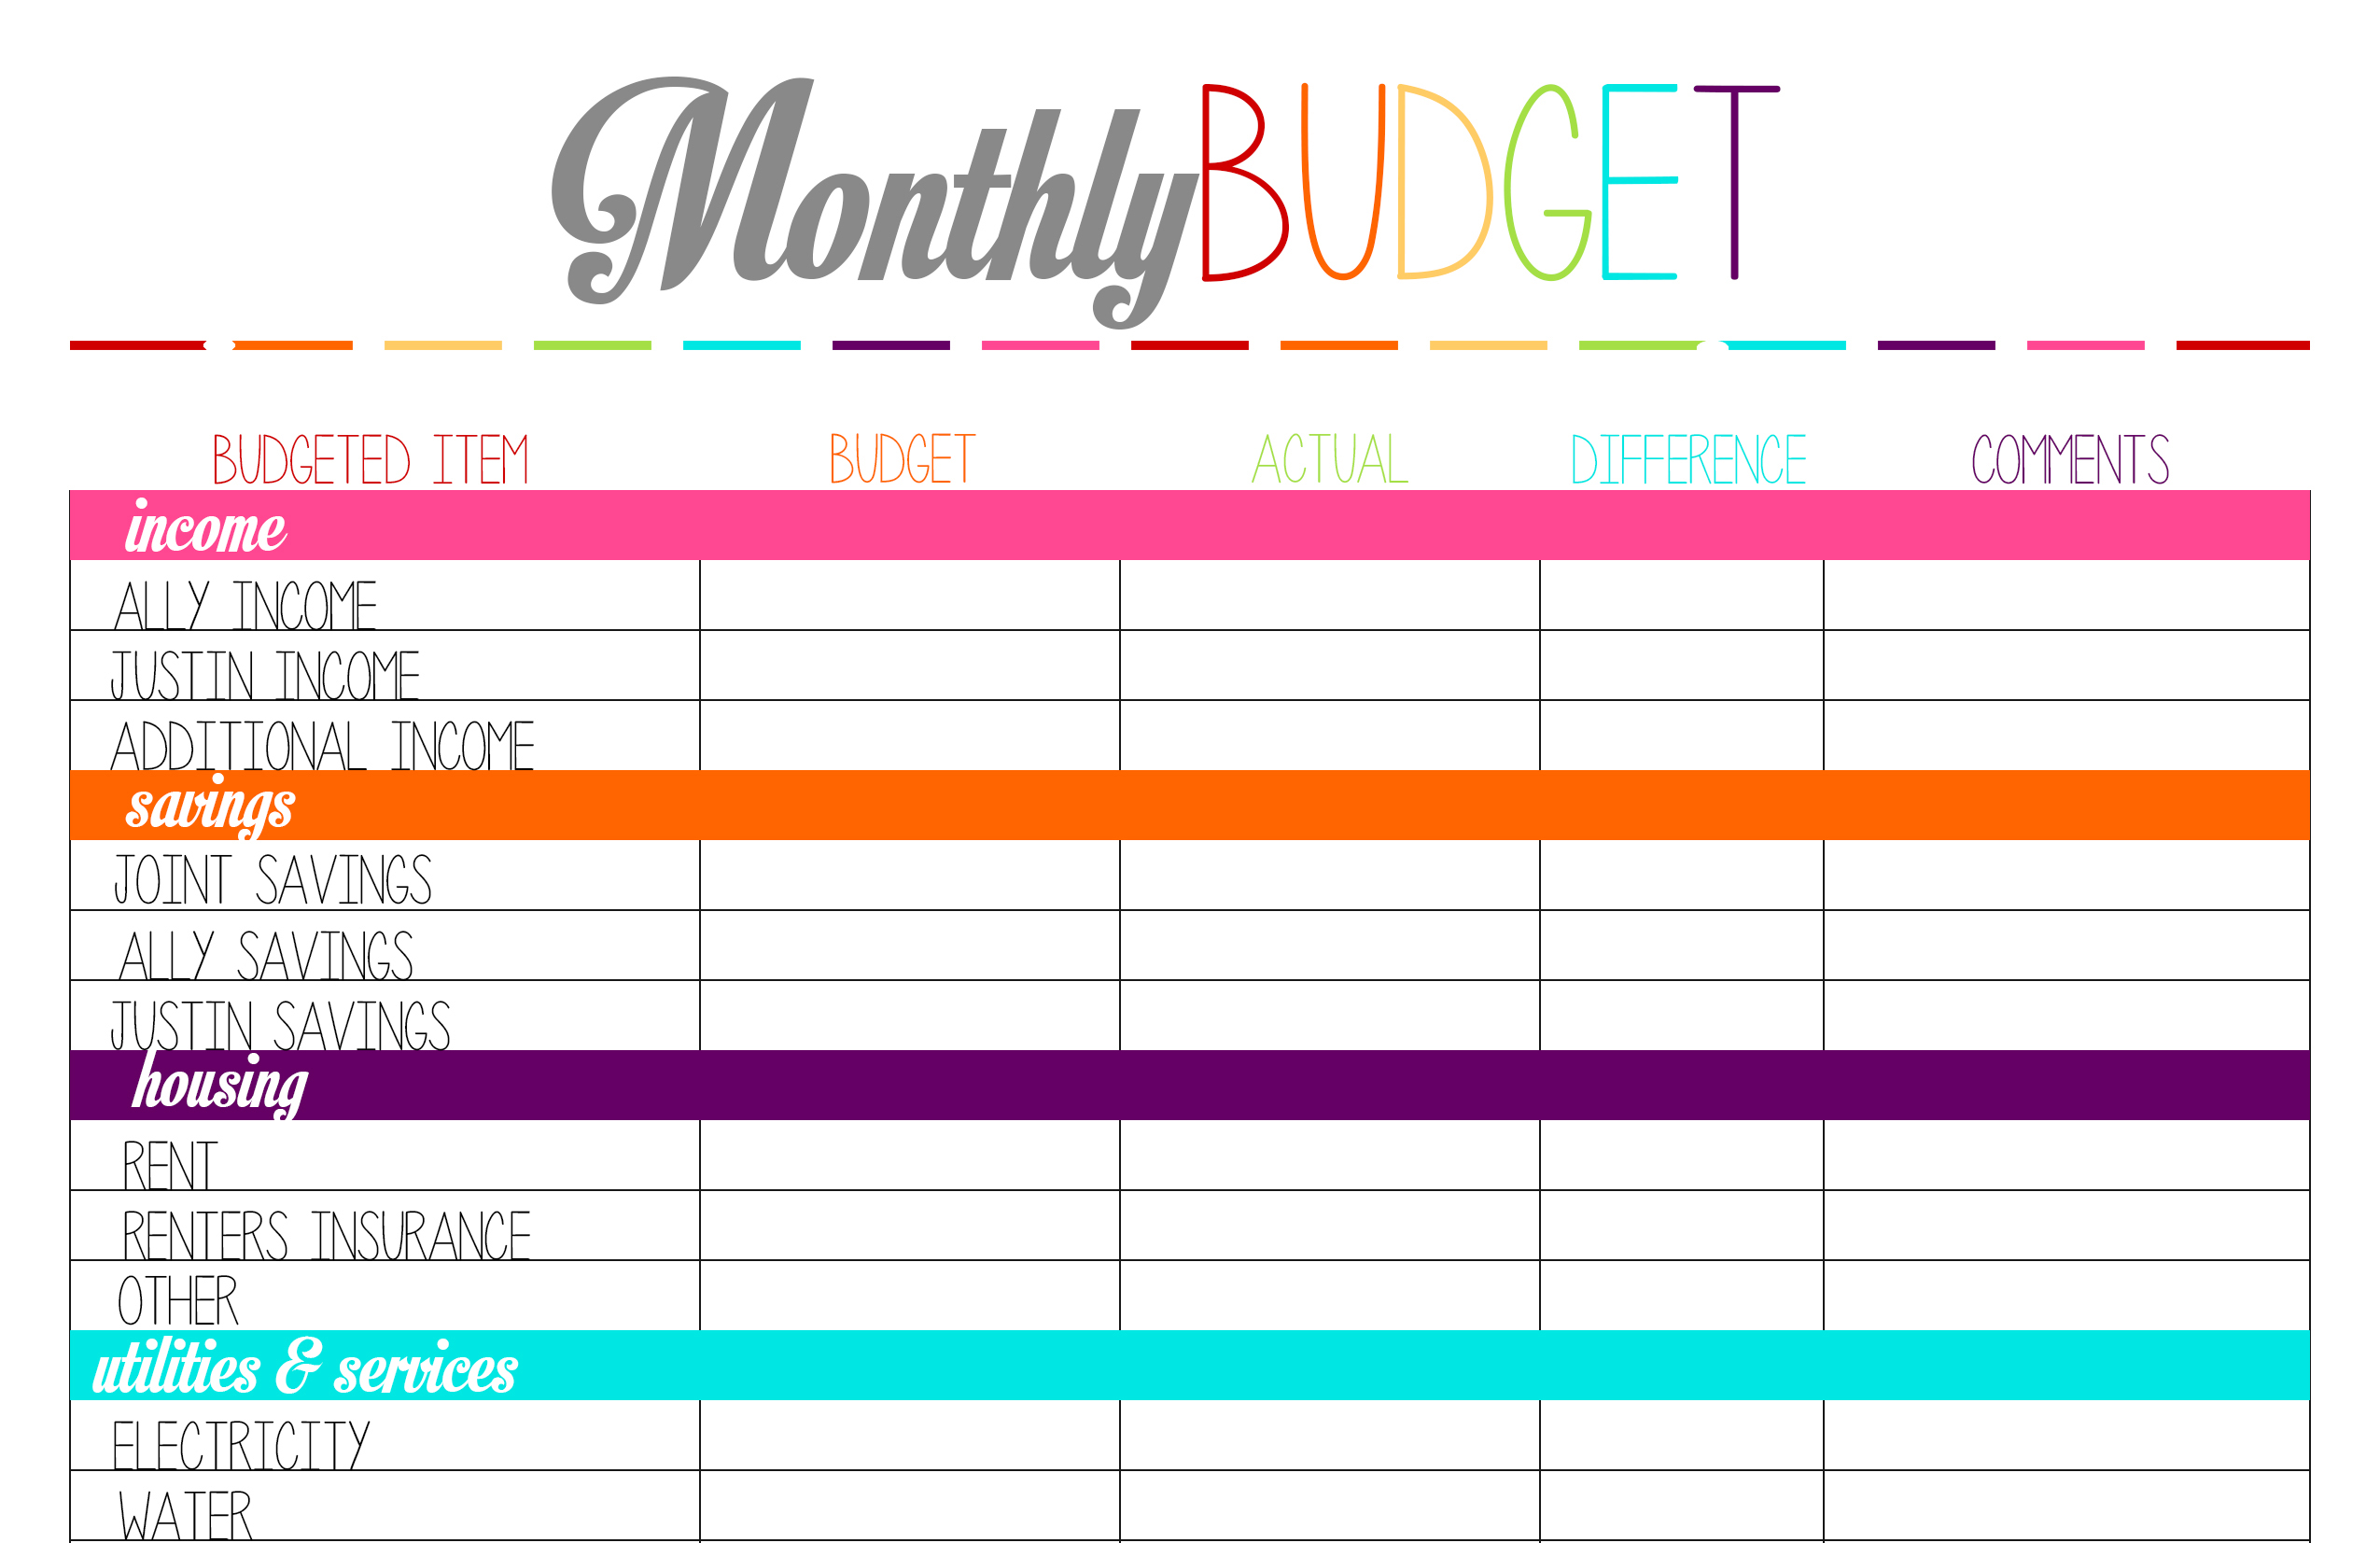 7 Best Images of Budget Worksheets Printable Money - Free ...